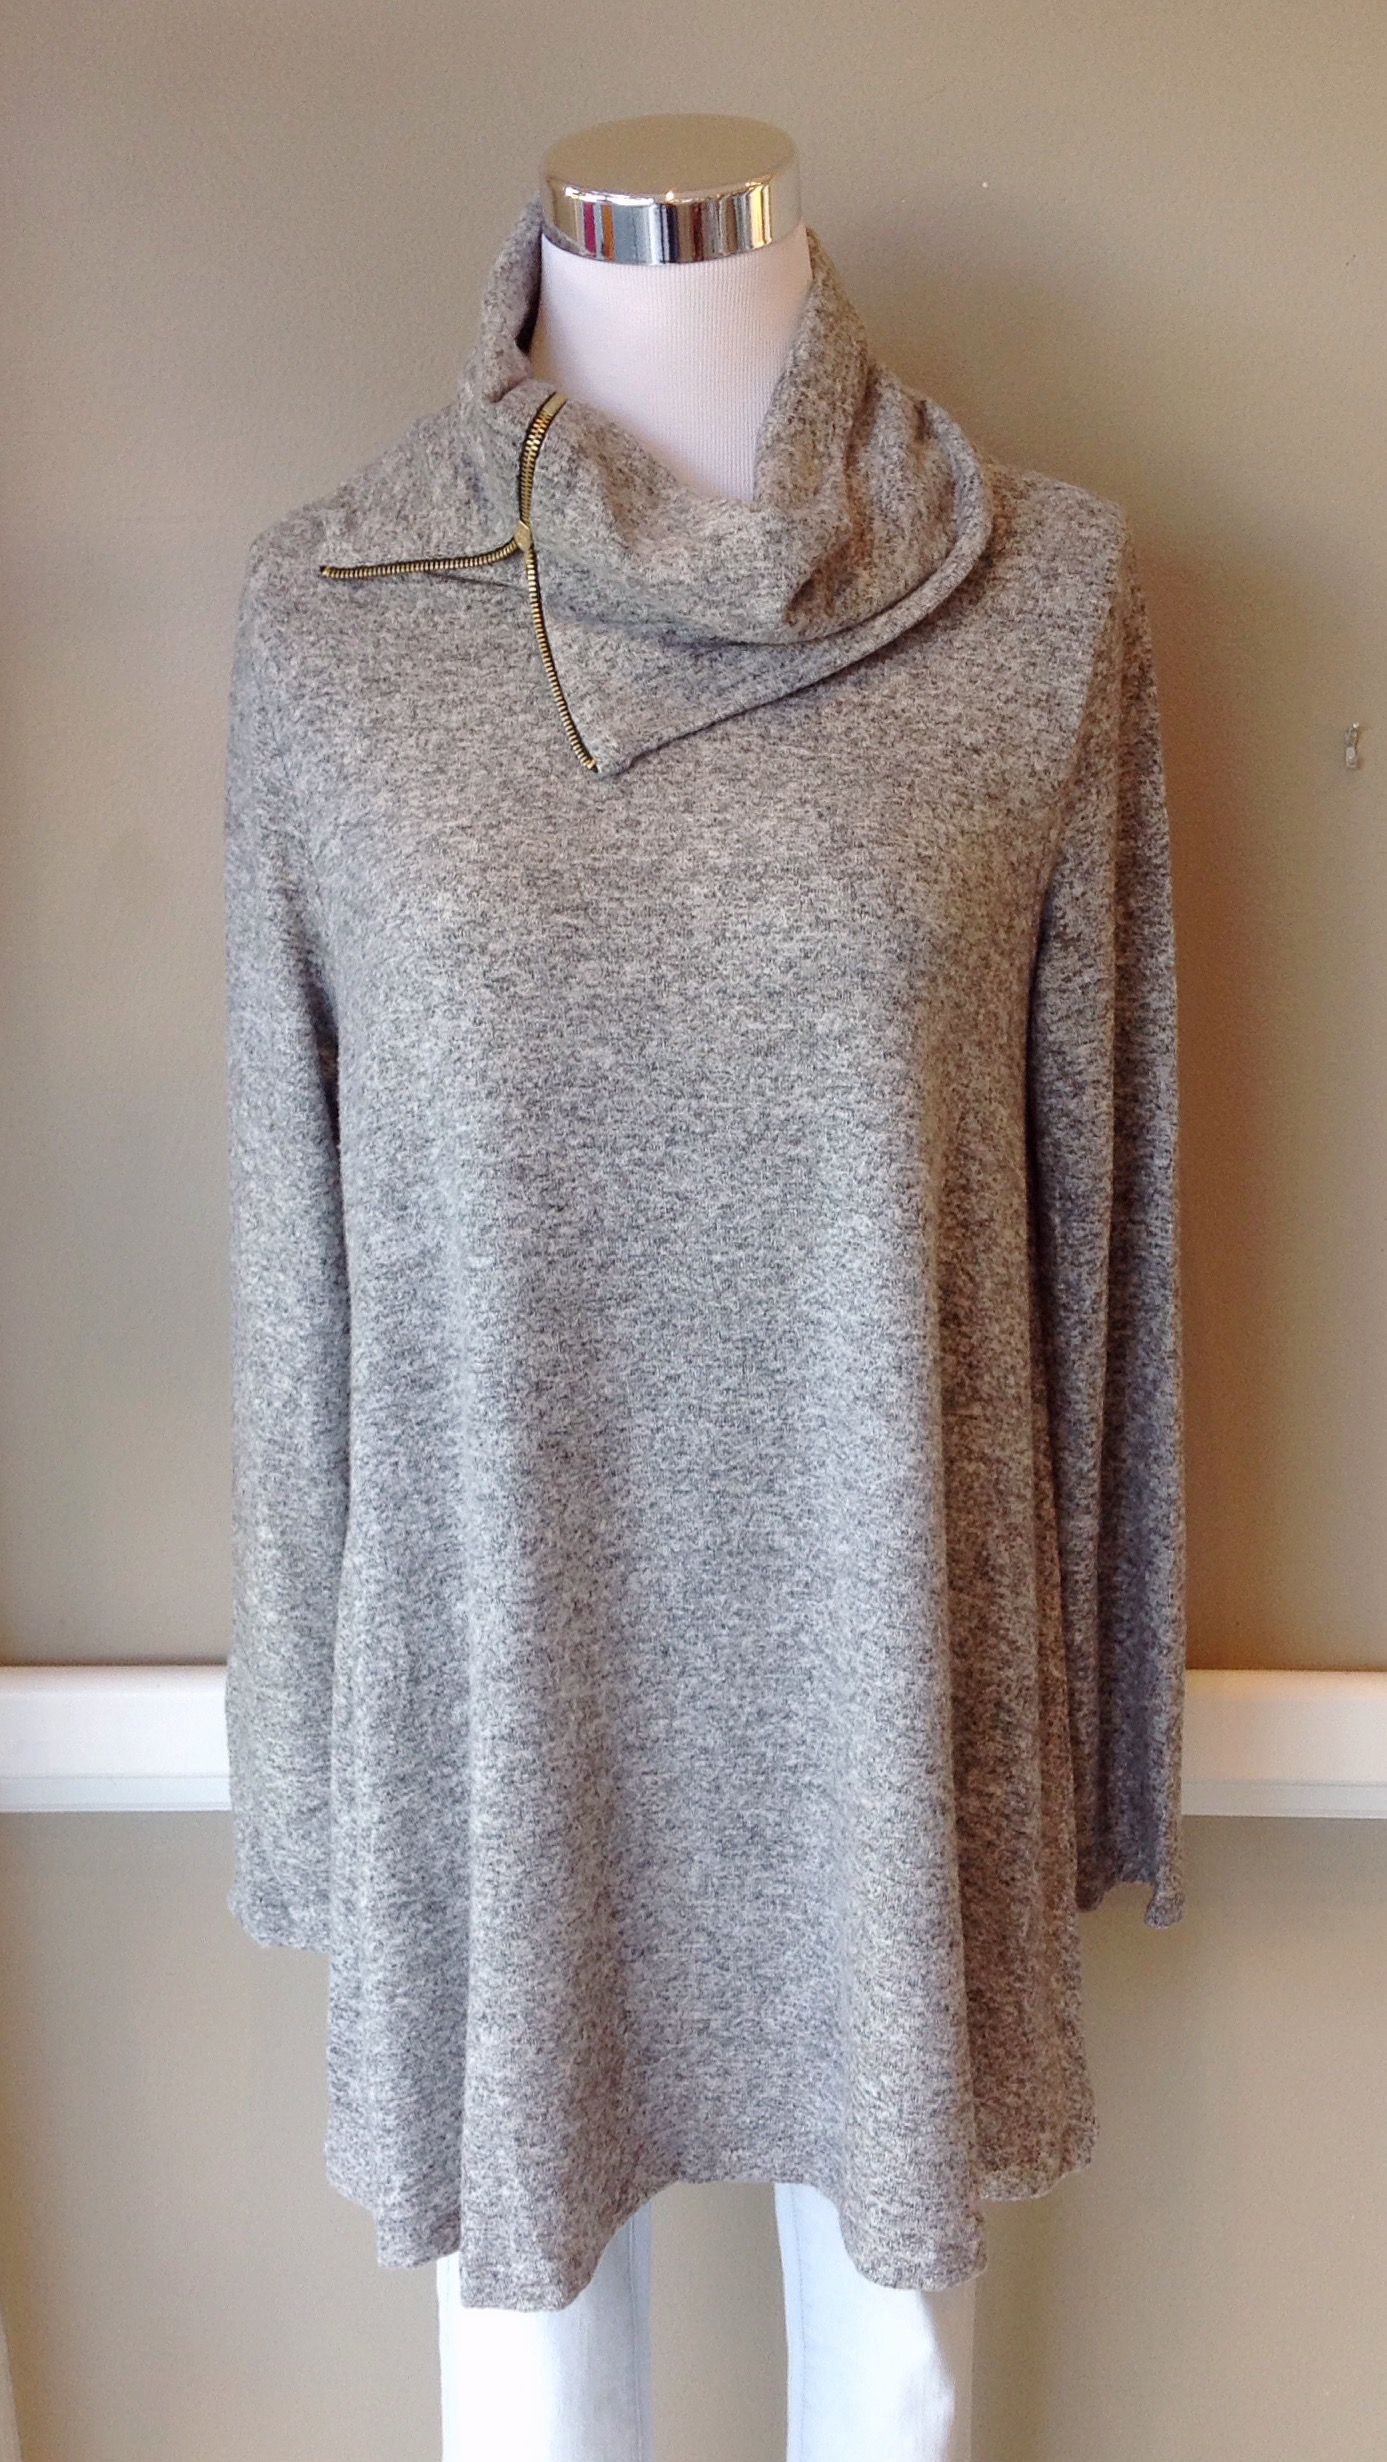 Heather grey, fleecy knit cowl sweater